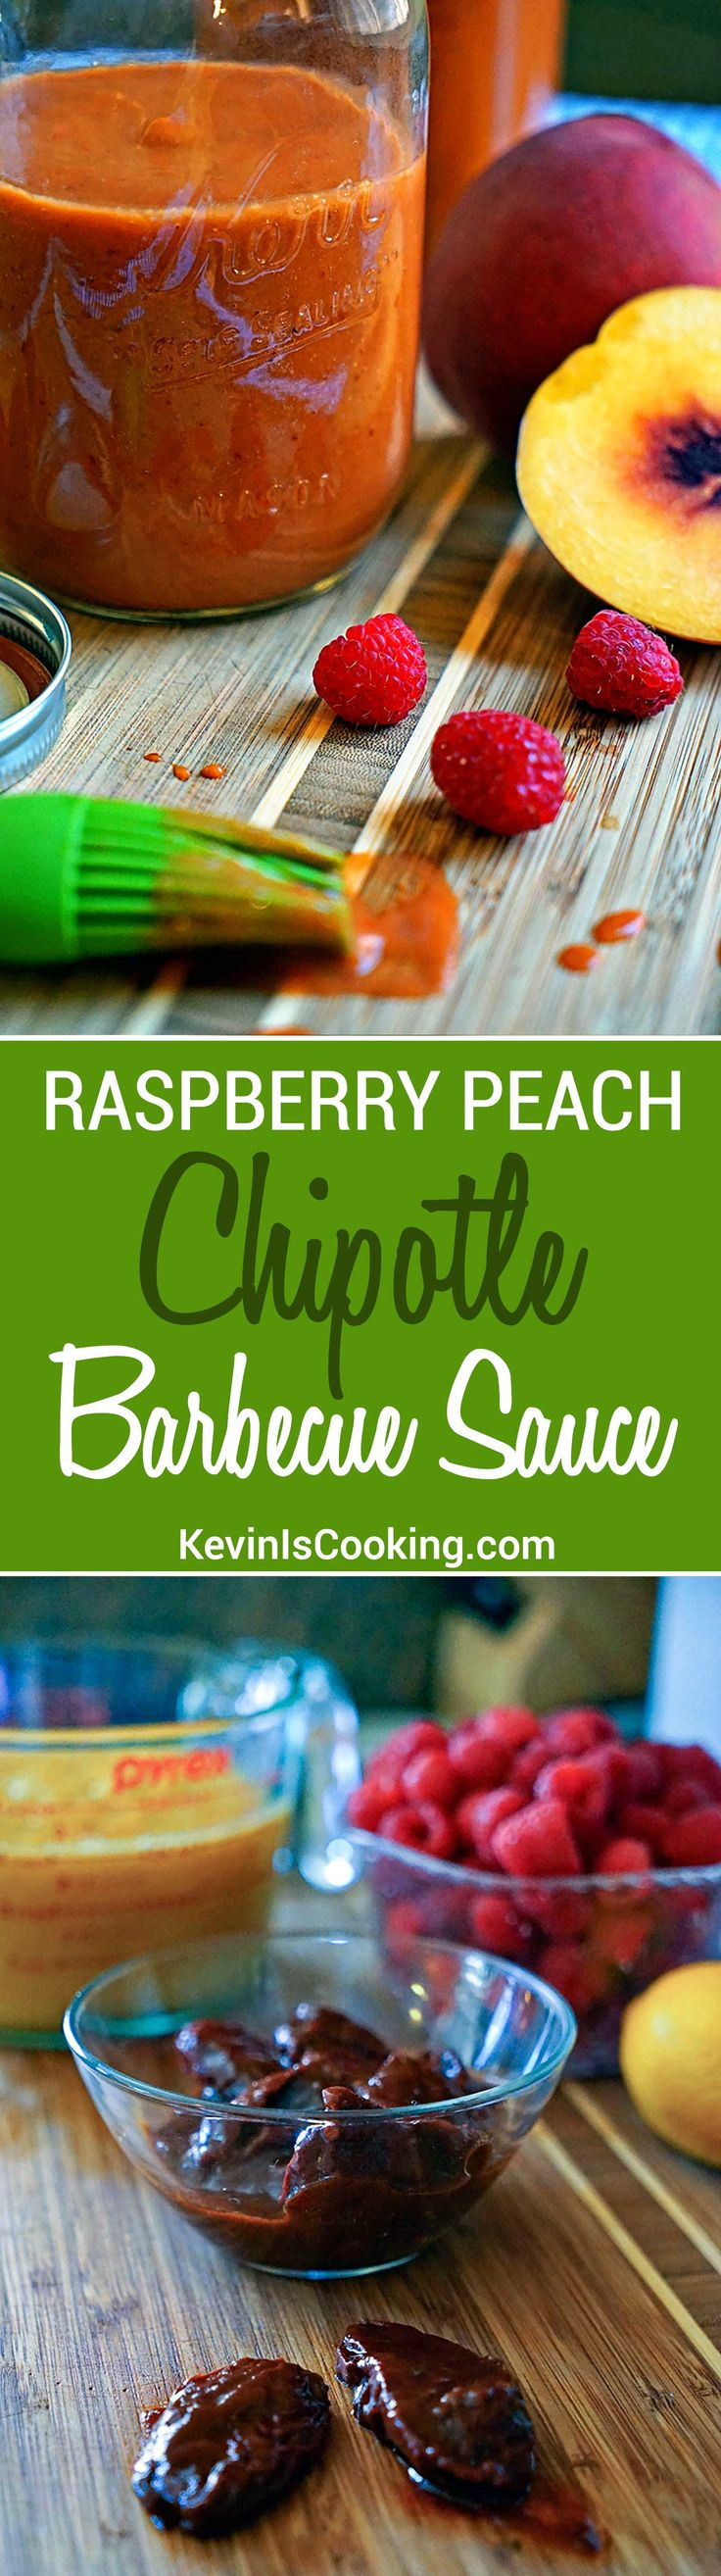 Finger licking good Raspberry Peach Chipotle BBQ Sauce with just enough heat and tangy fruit flavor to keep you reaching back for more.